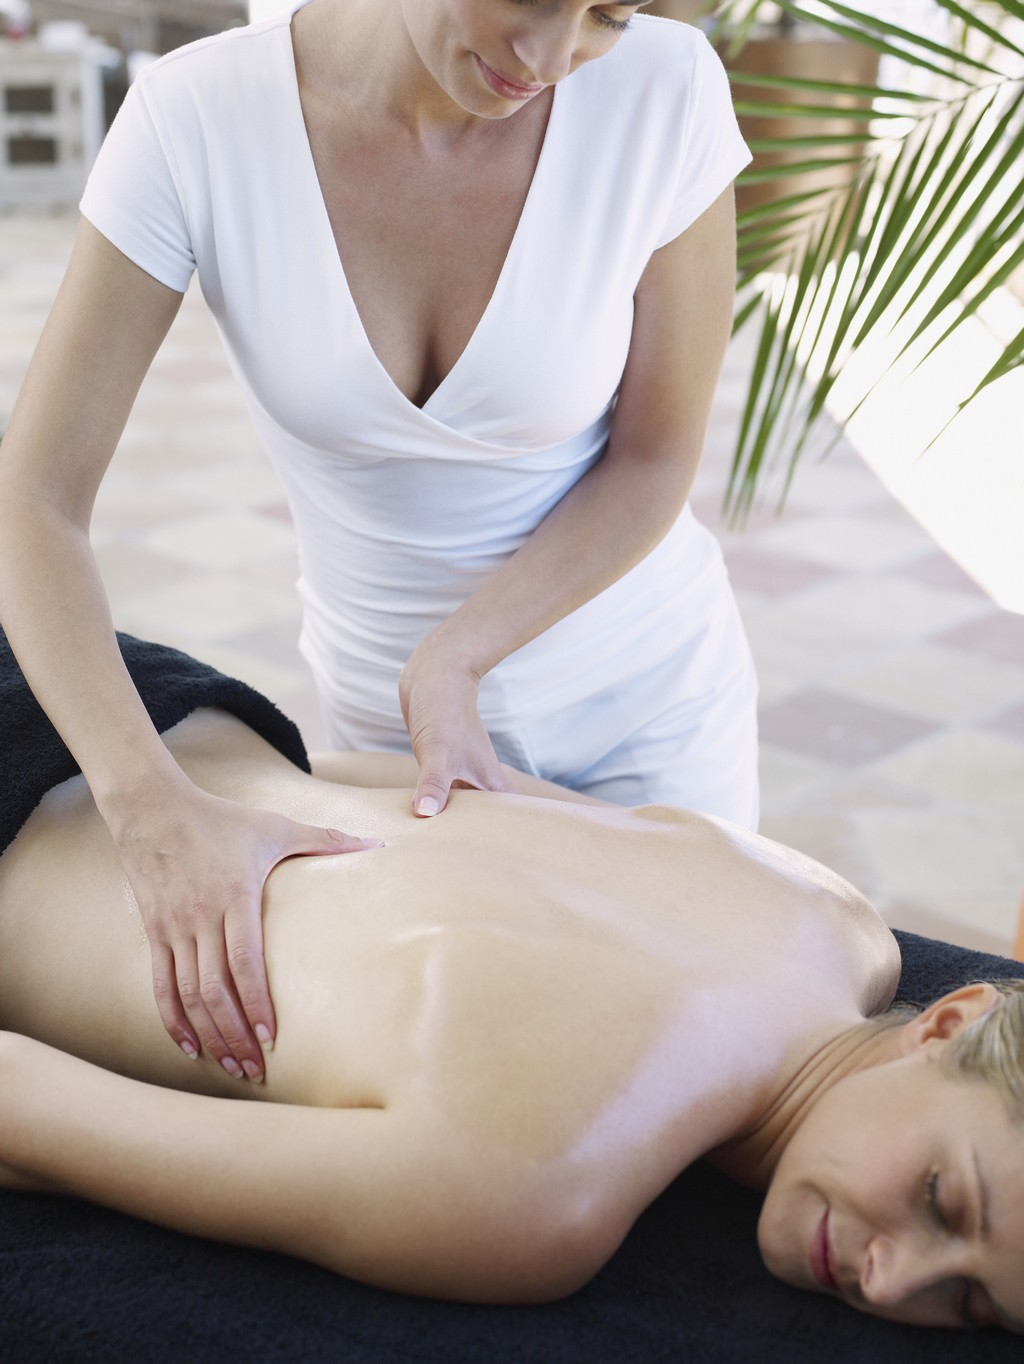 memphis massage therapy